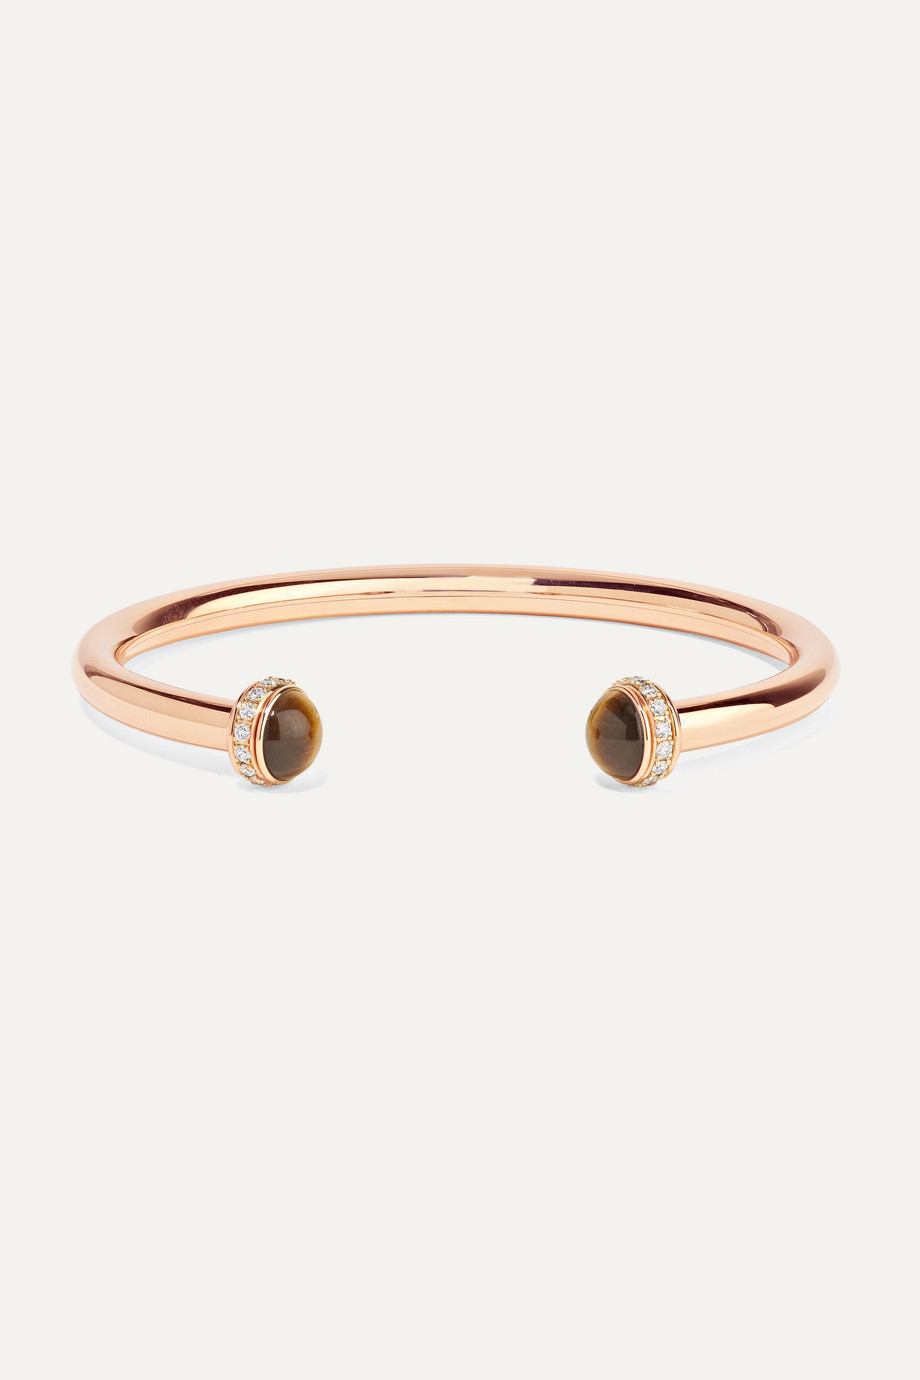 PIAGET Possession 18-karat rose gold, tiger's eye and diamond cuff